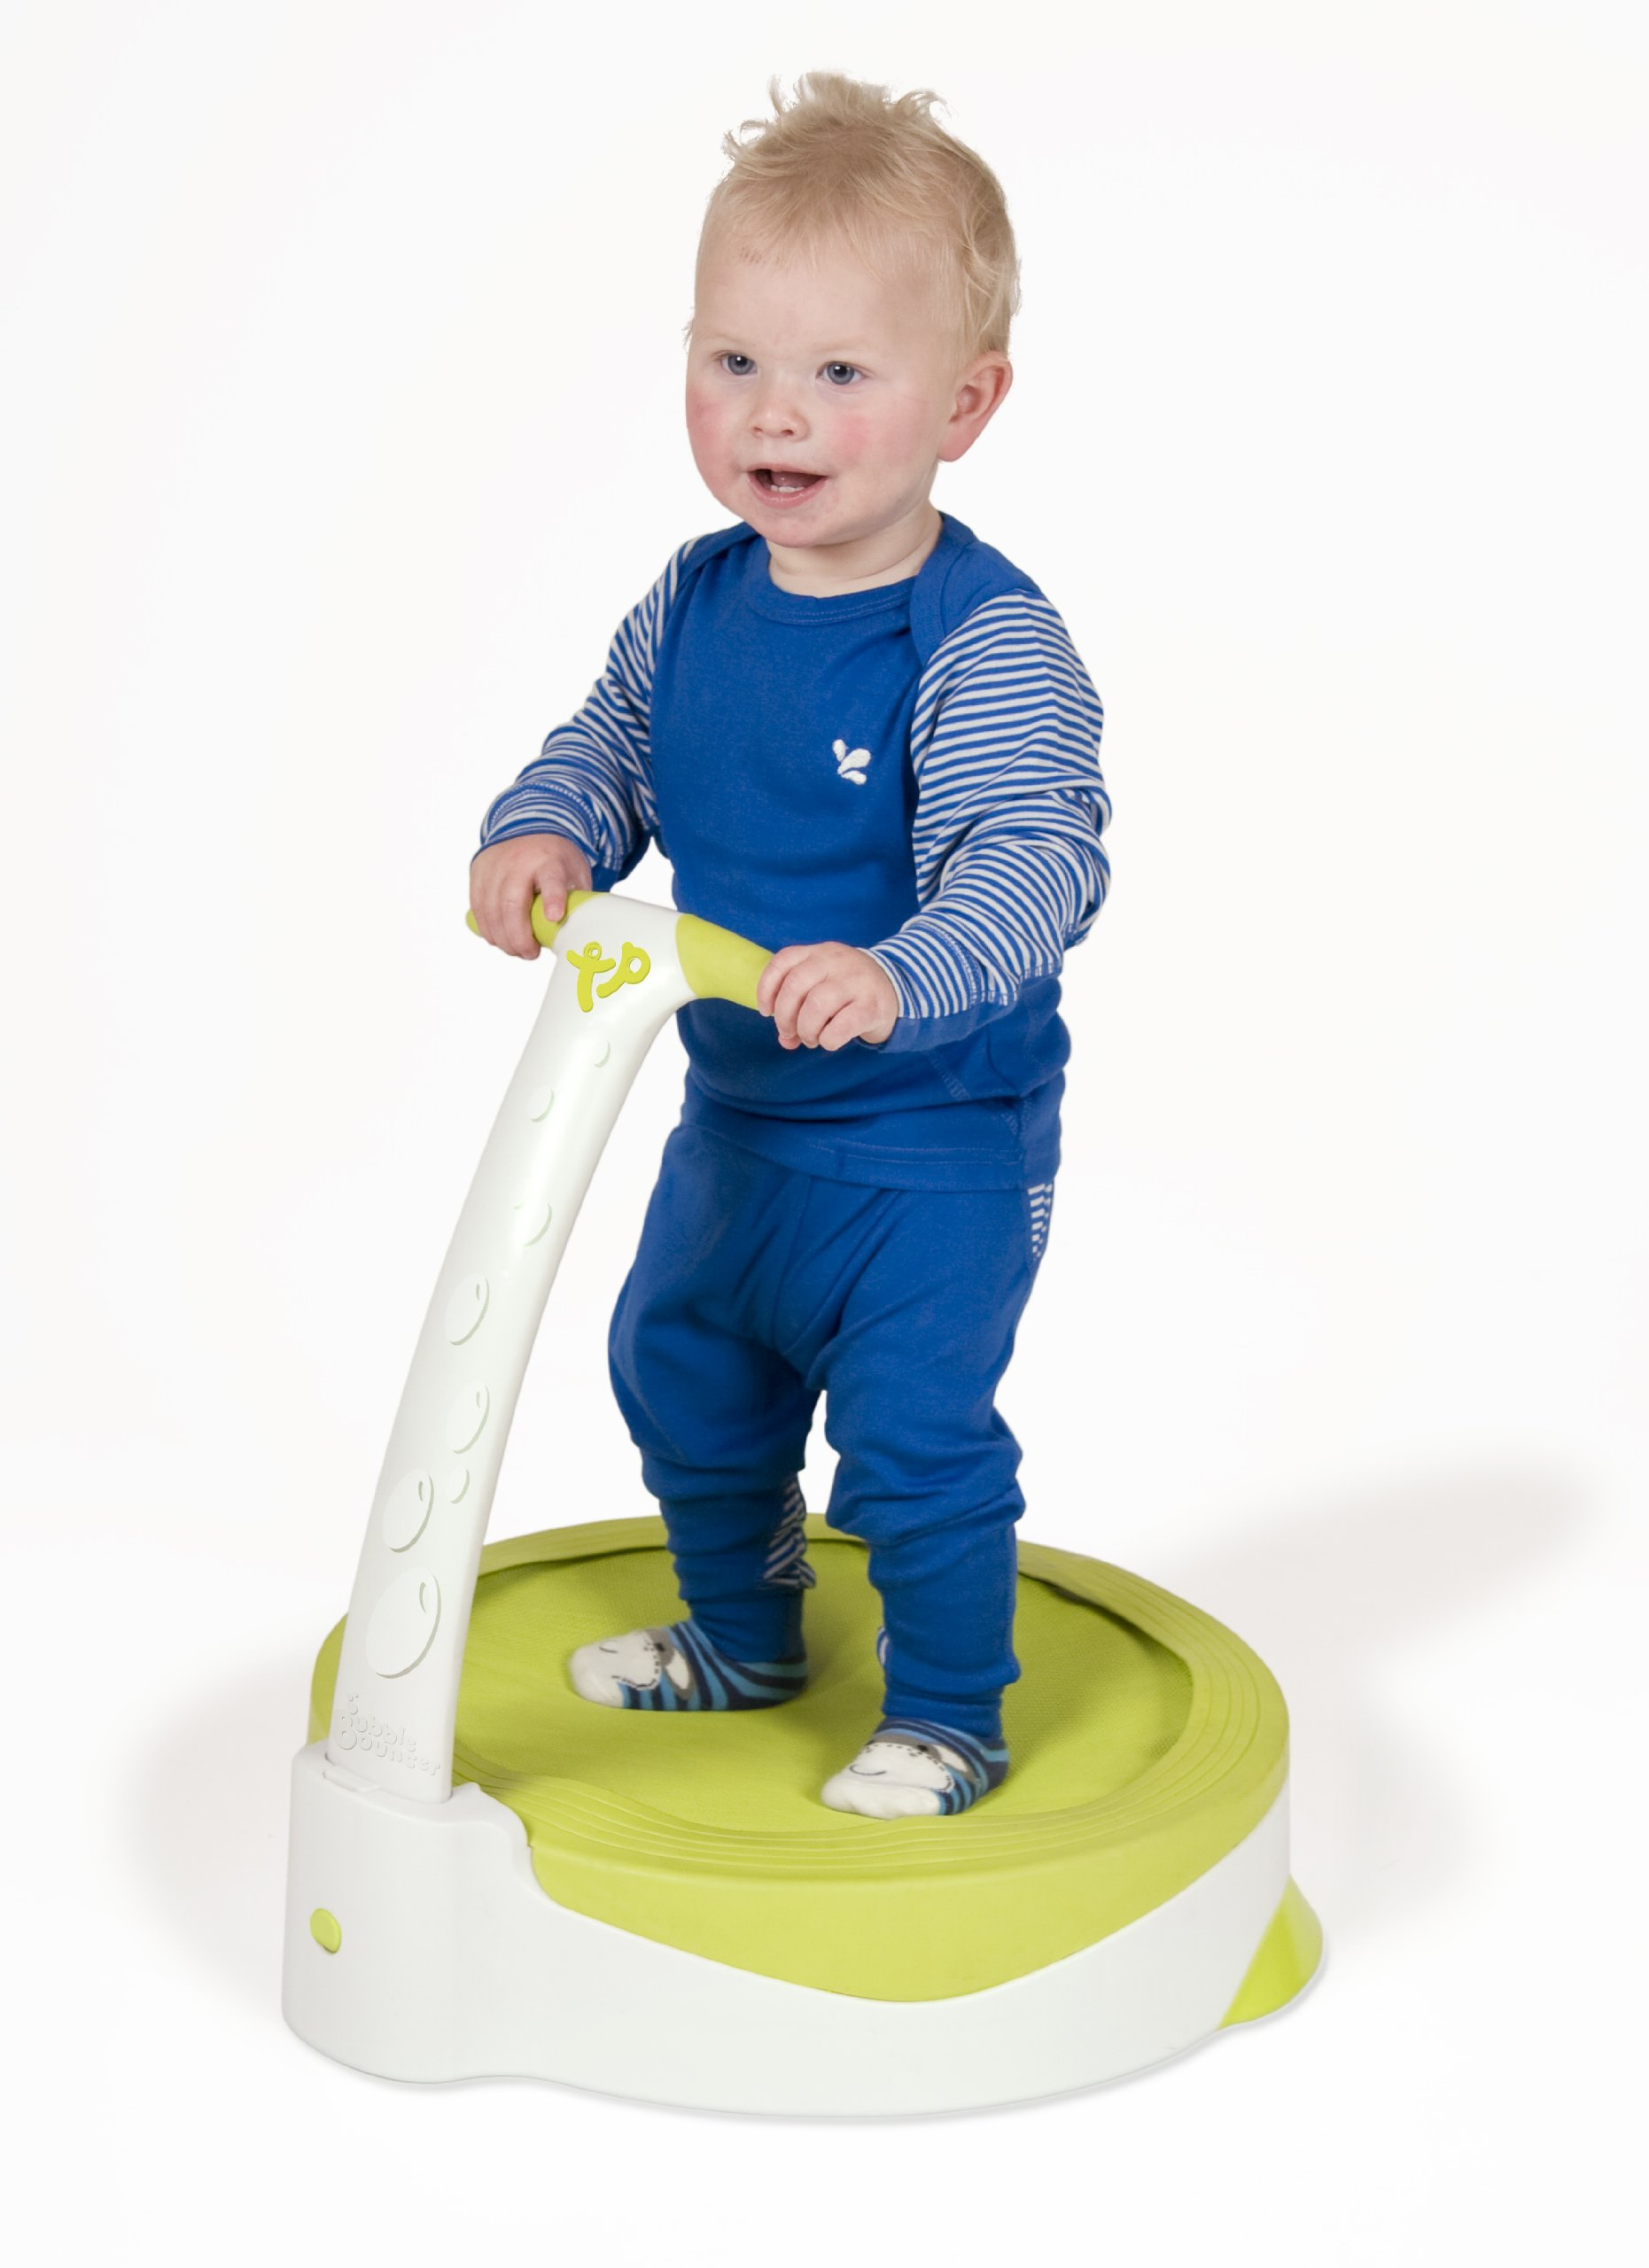 TP Toys Baby Bubble Bouncer Toddler Trampoline with Handle